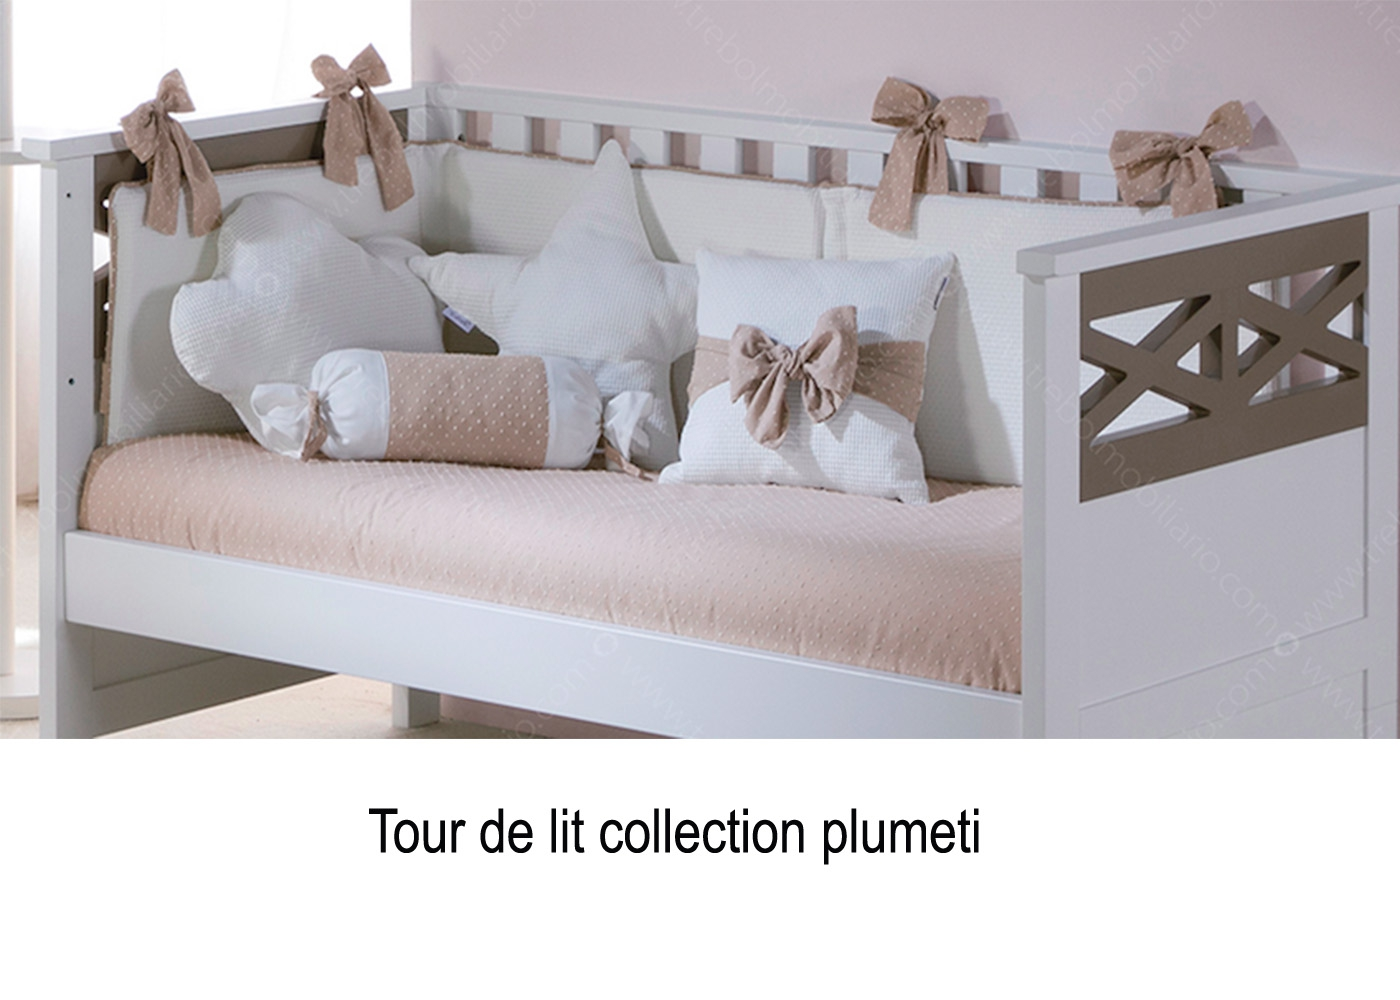 choix vari de tour de lit de qualit chez ksl living. Black Bedroom Furniture Sets. Home Design Ideas